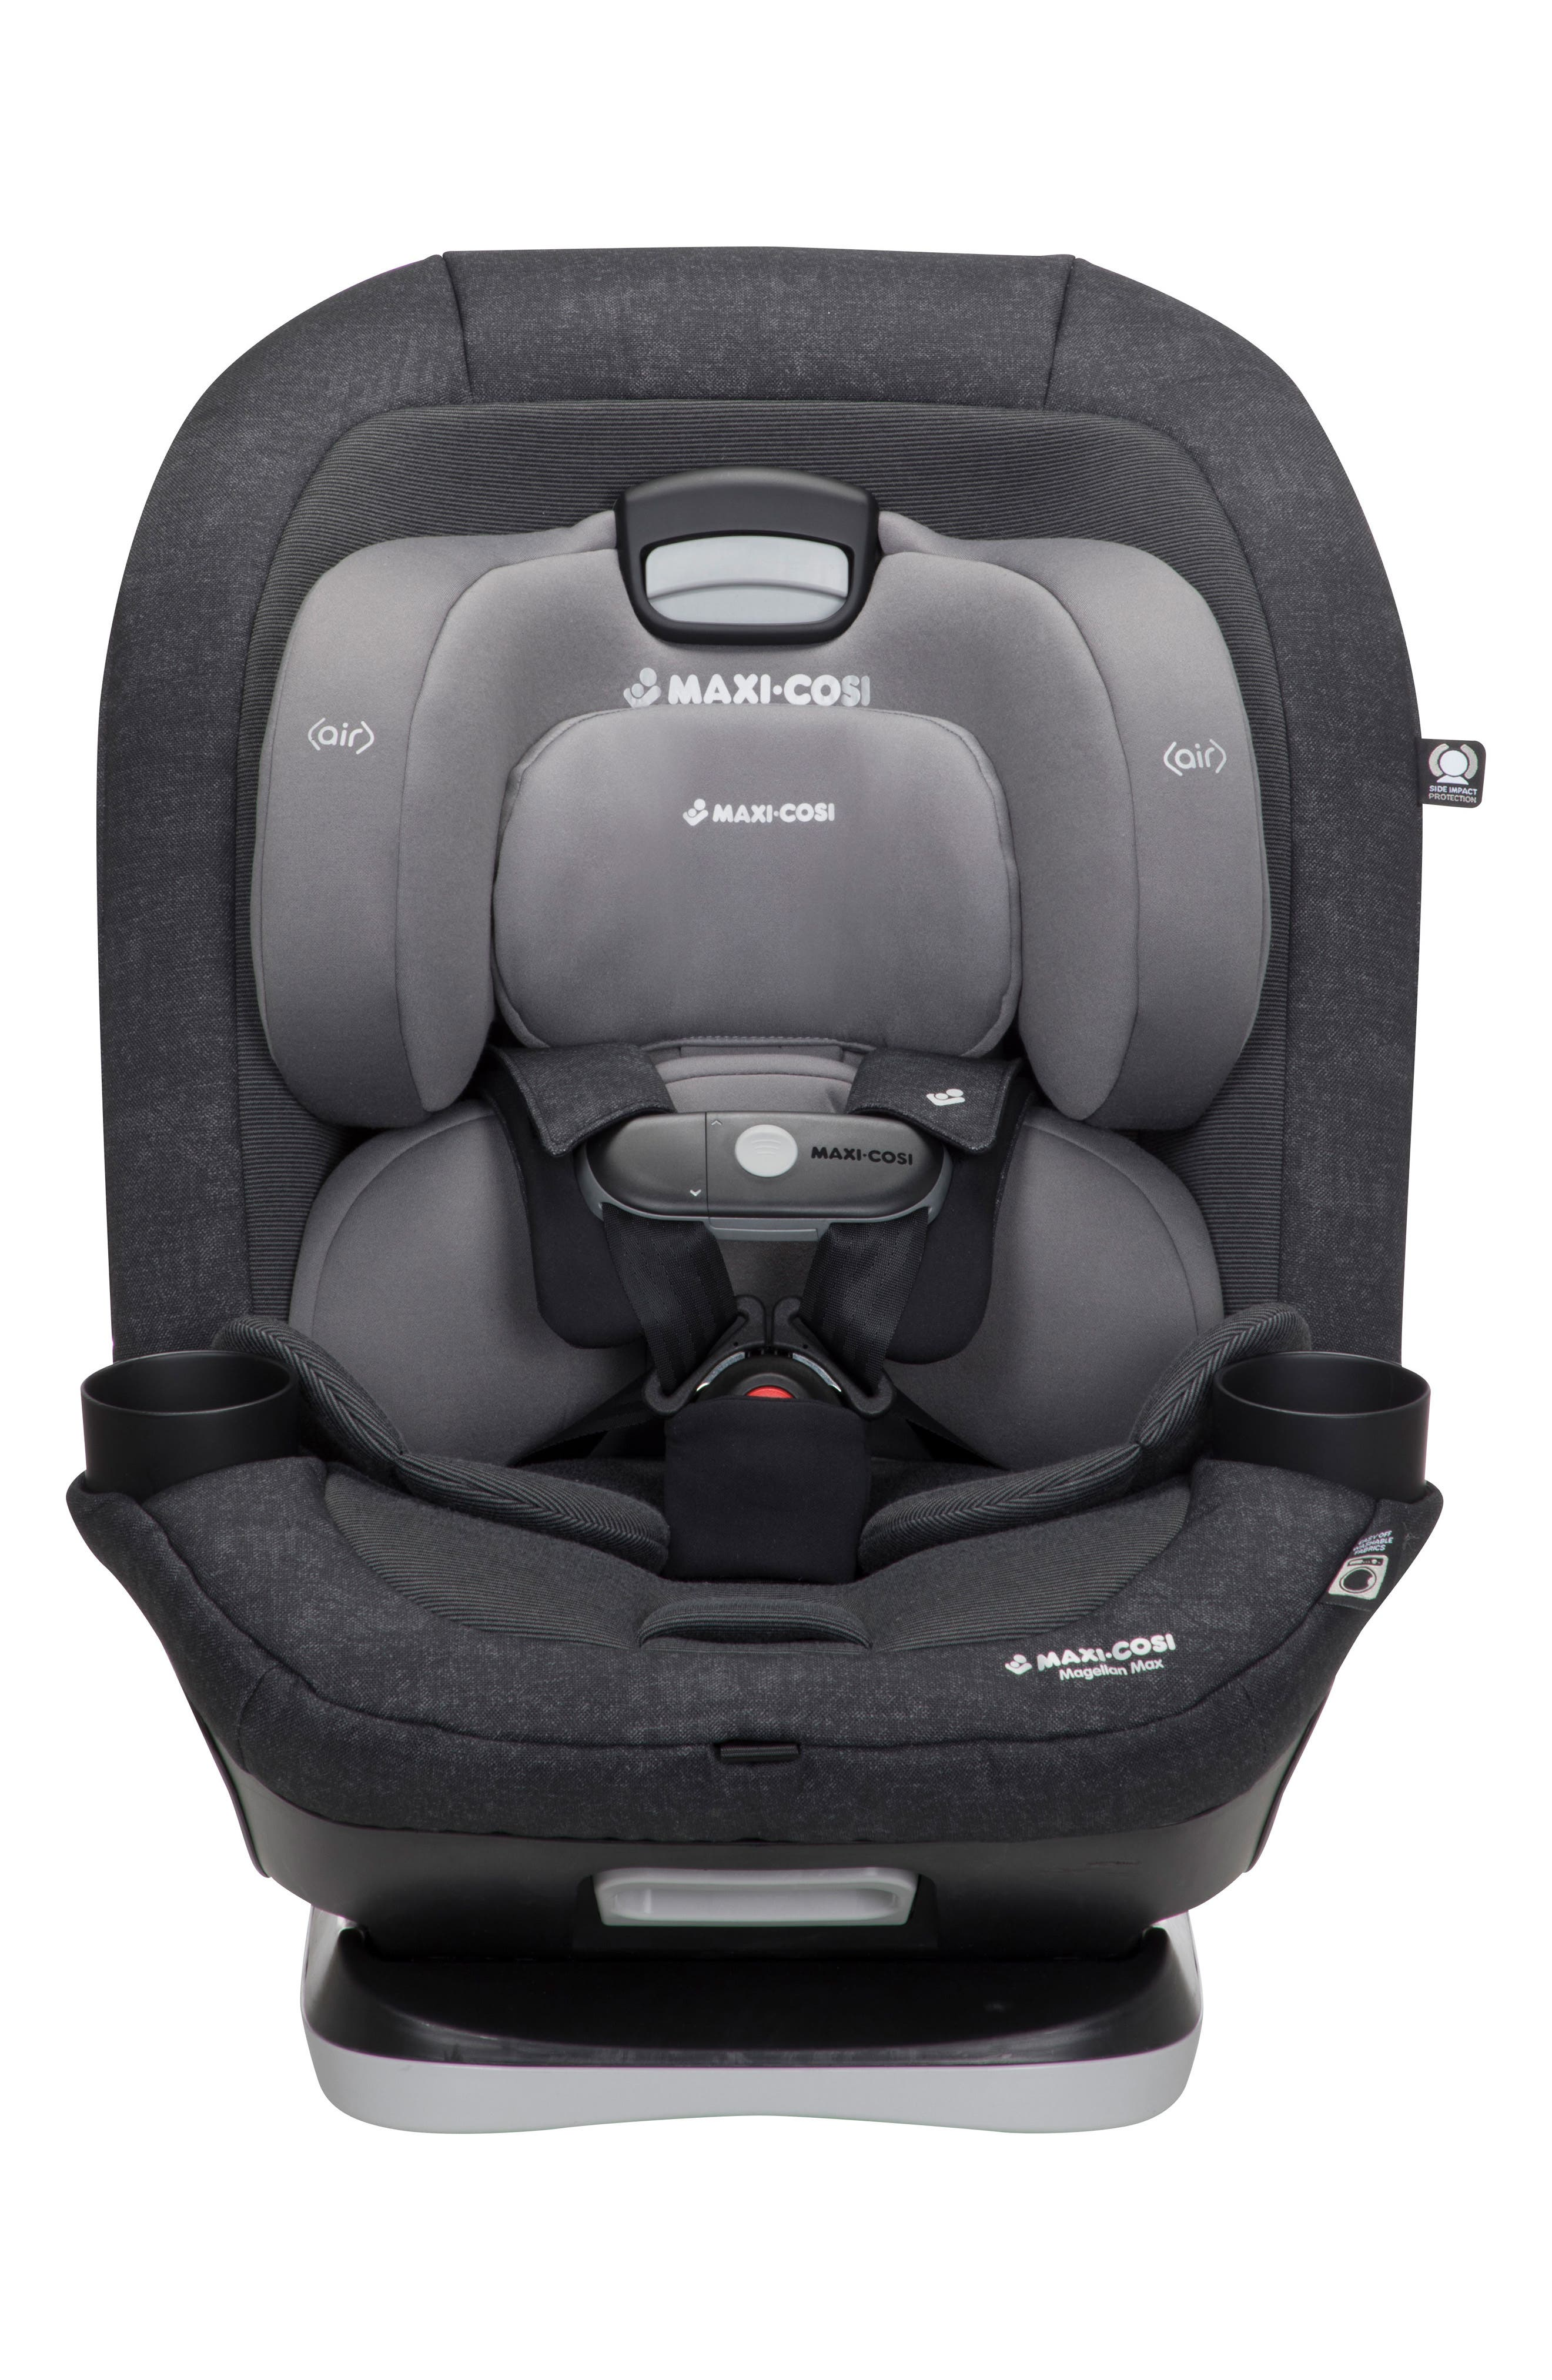 Magellan Max 2018 5-in-1 Convertible Car Seat,                             Main thumbnail 1, color,                             NOMAD BLACK